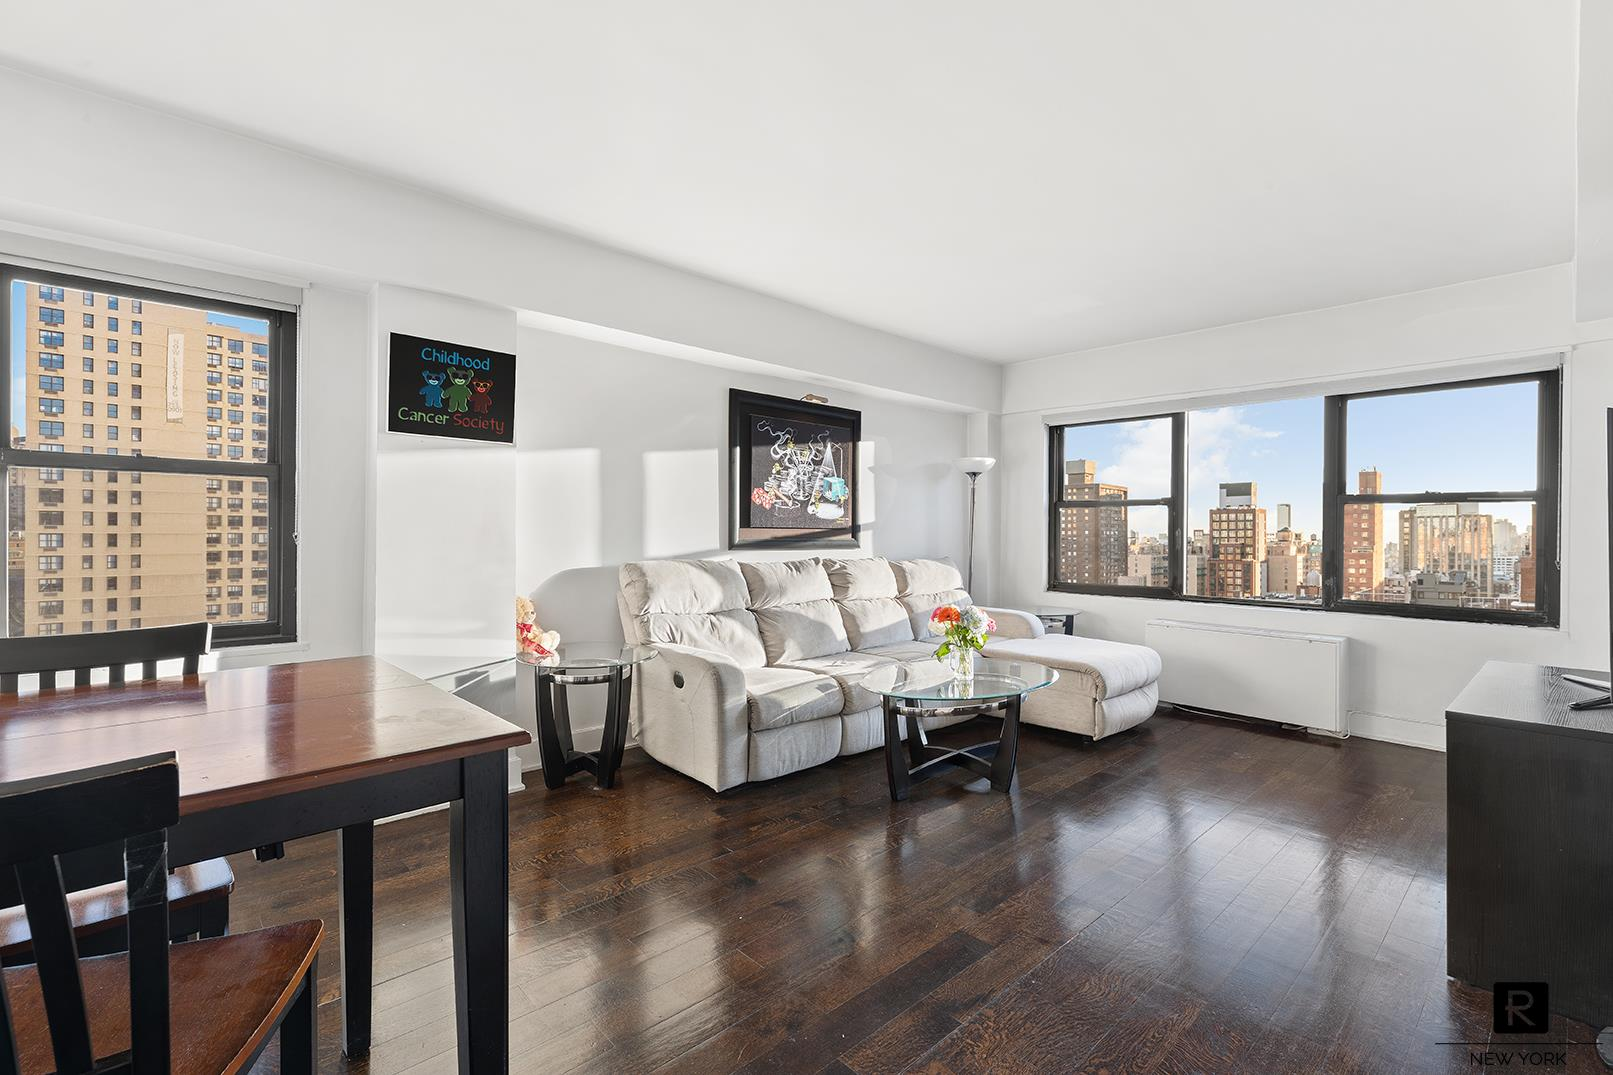 Apartment for sale at 200 East 27th Street, Apt 17-F